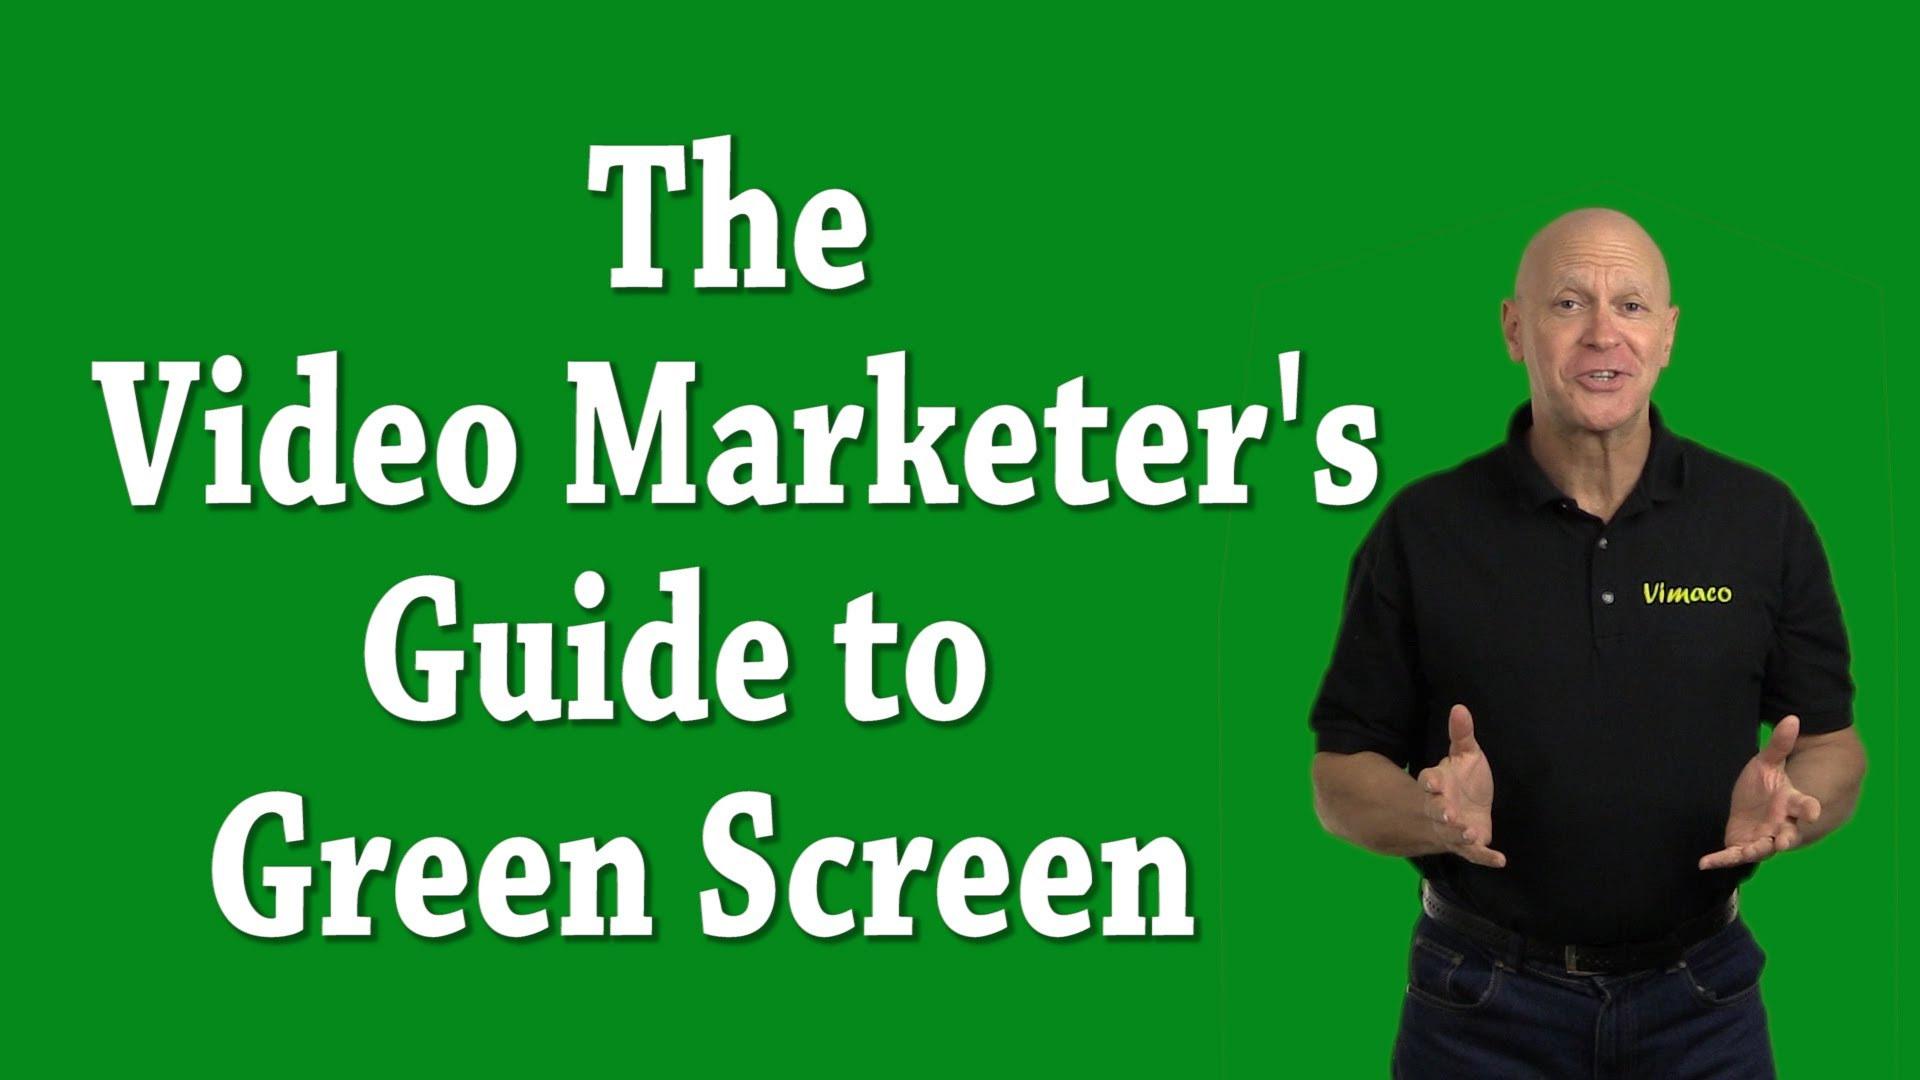 The Video Marketer's Guide to Green Screen